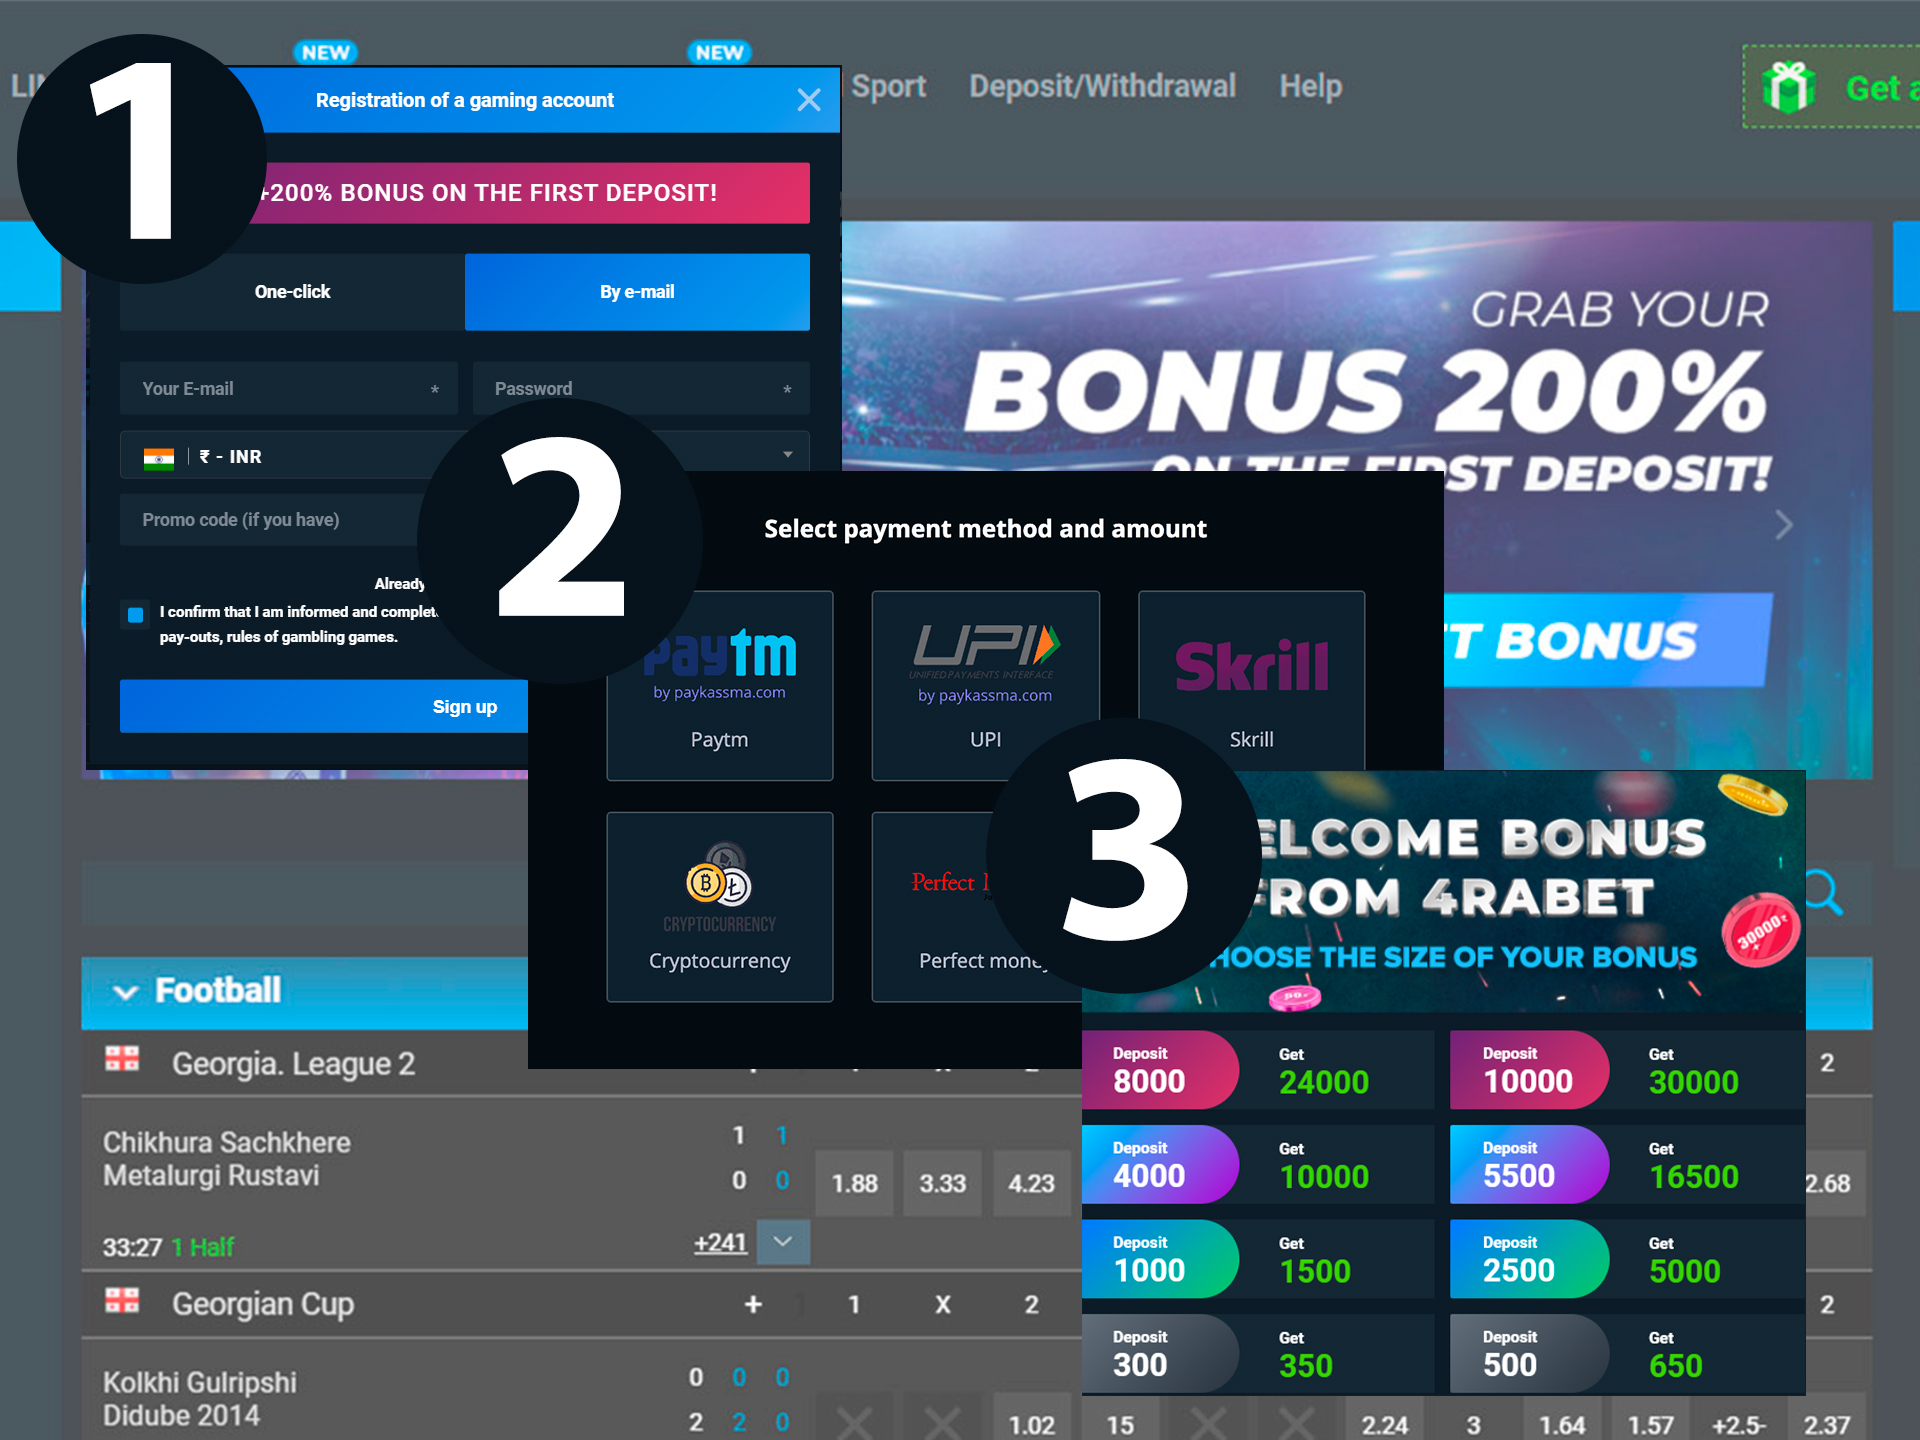 Make an account at 4rabet, top up it and get the bonus to start betting.